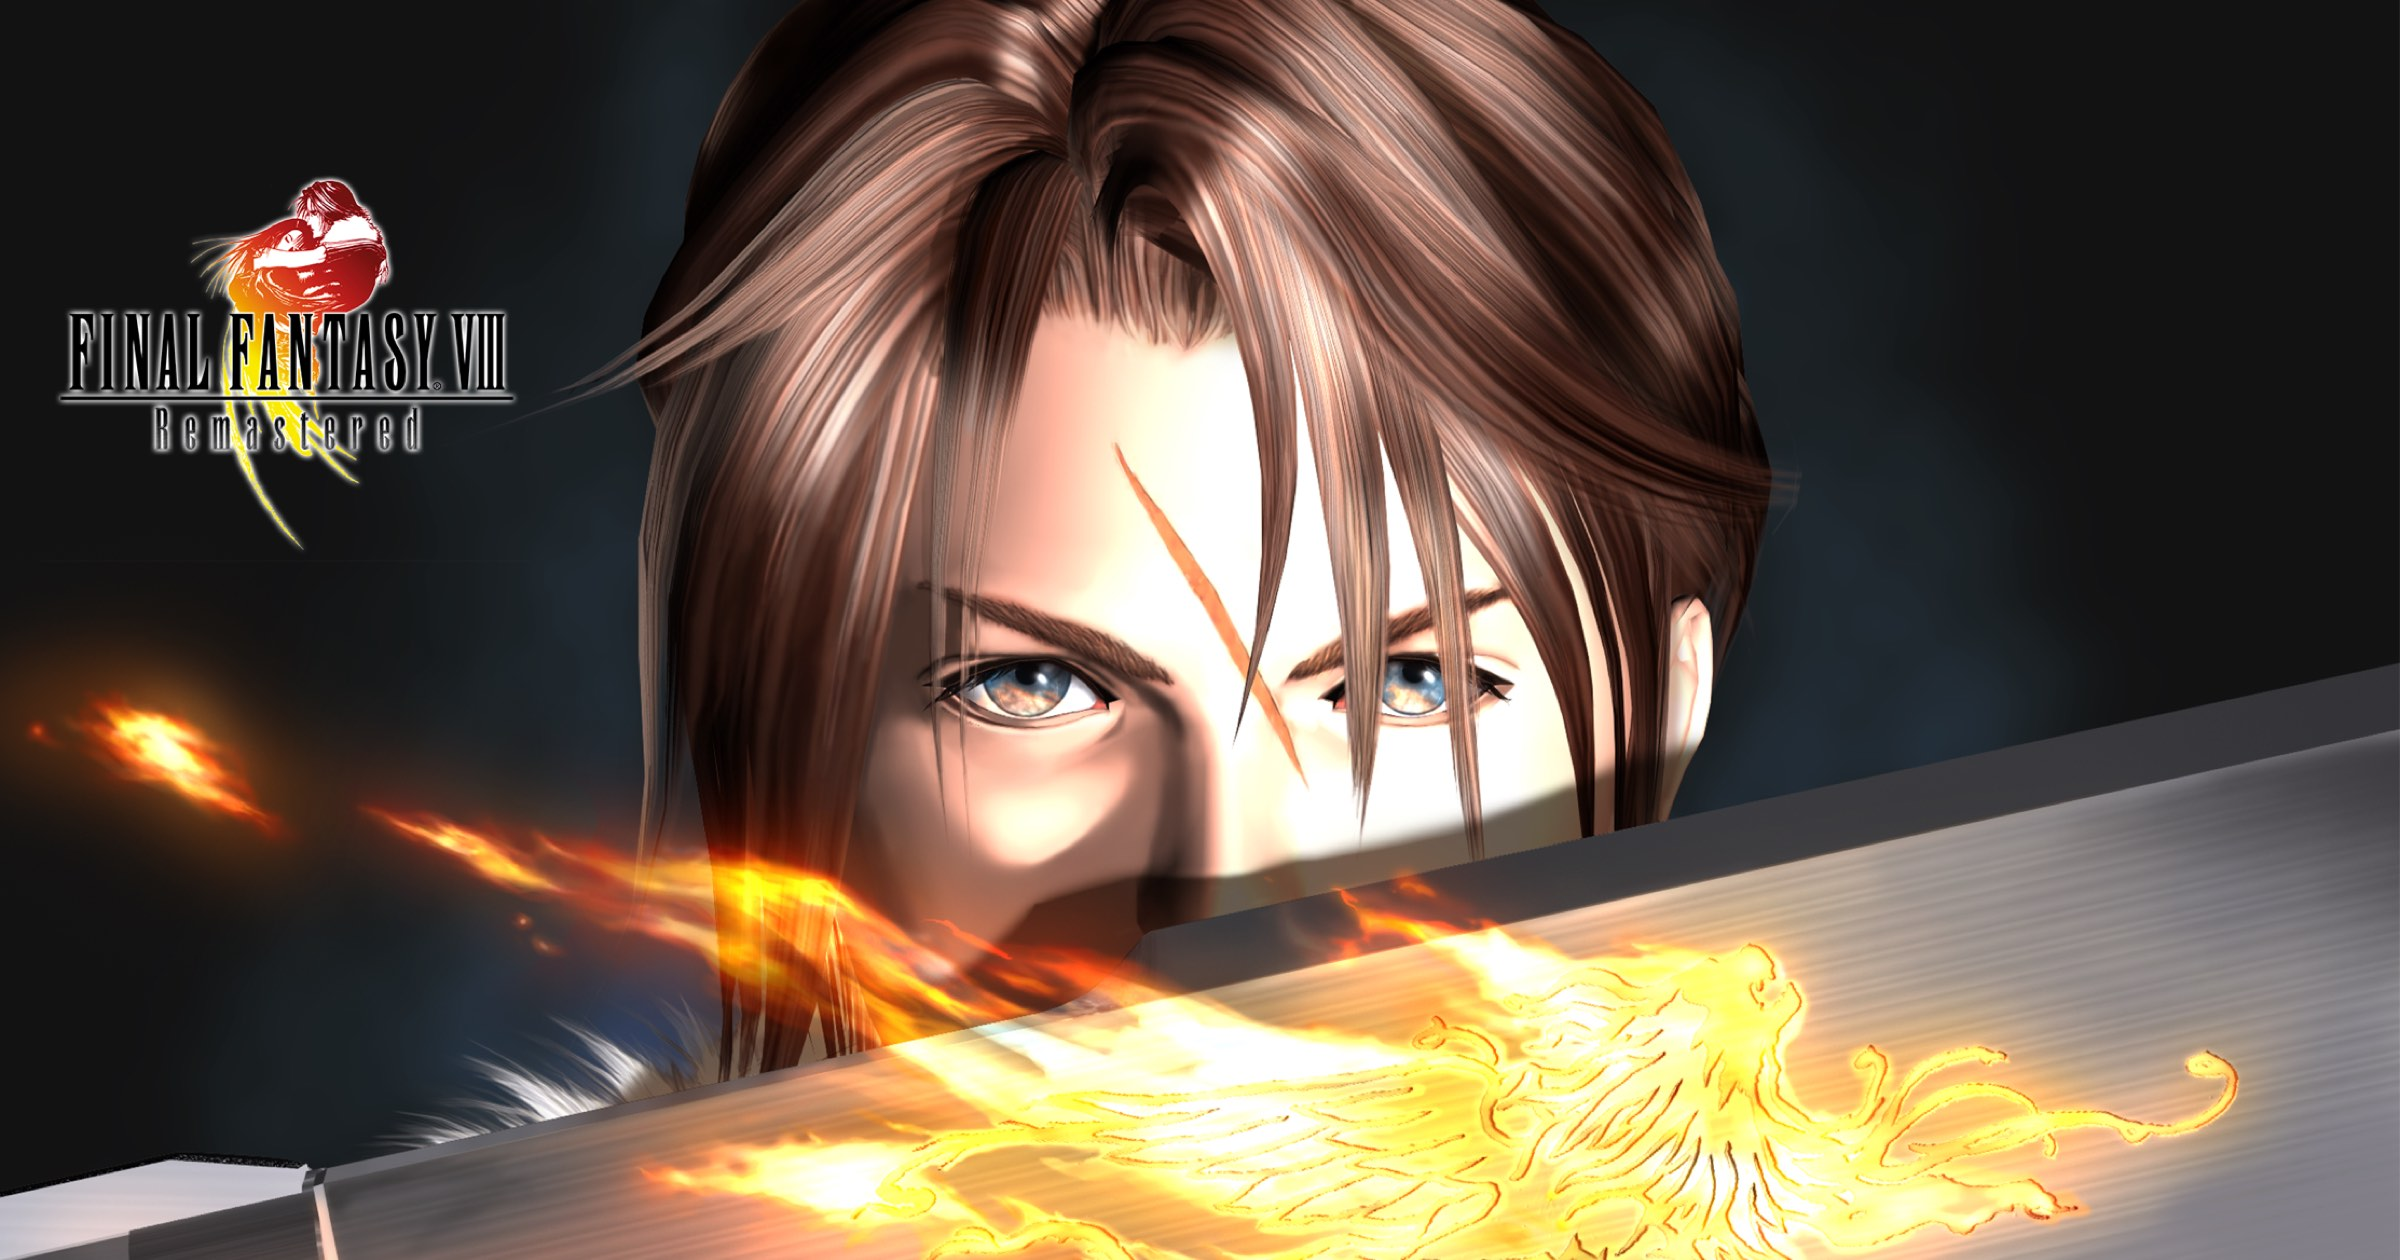 'Final Fantasy VIII' Available to Play on iOS